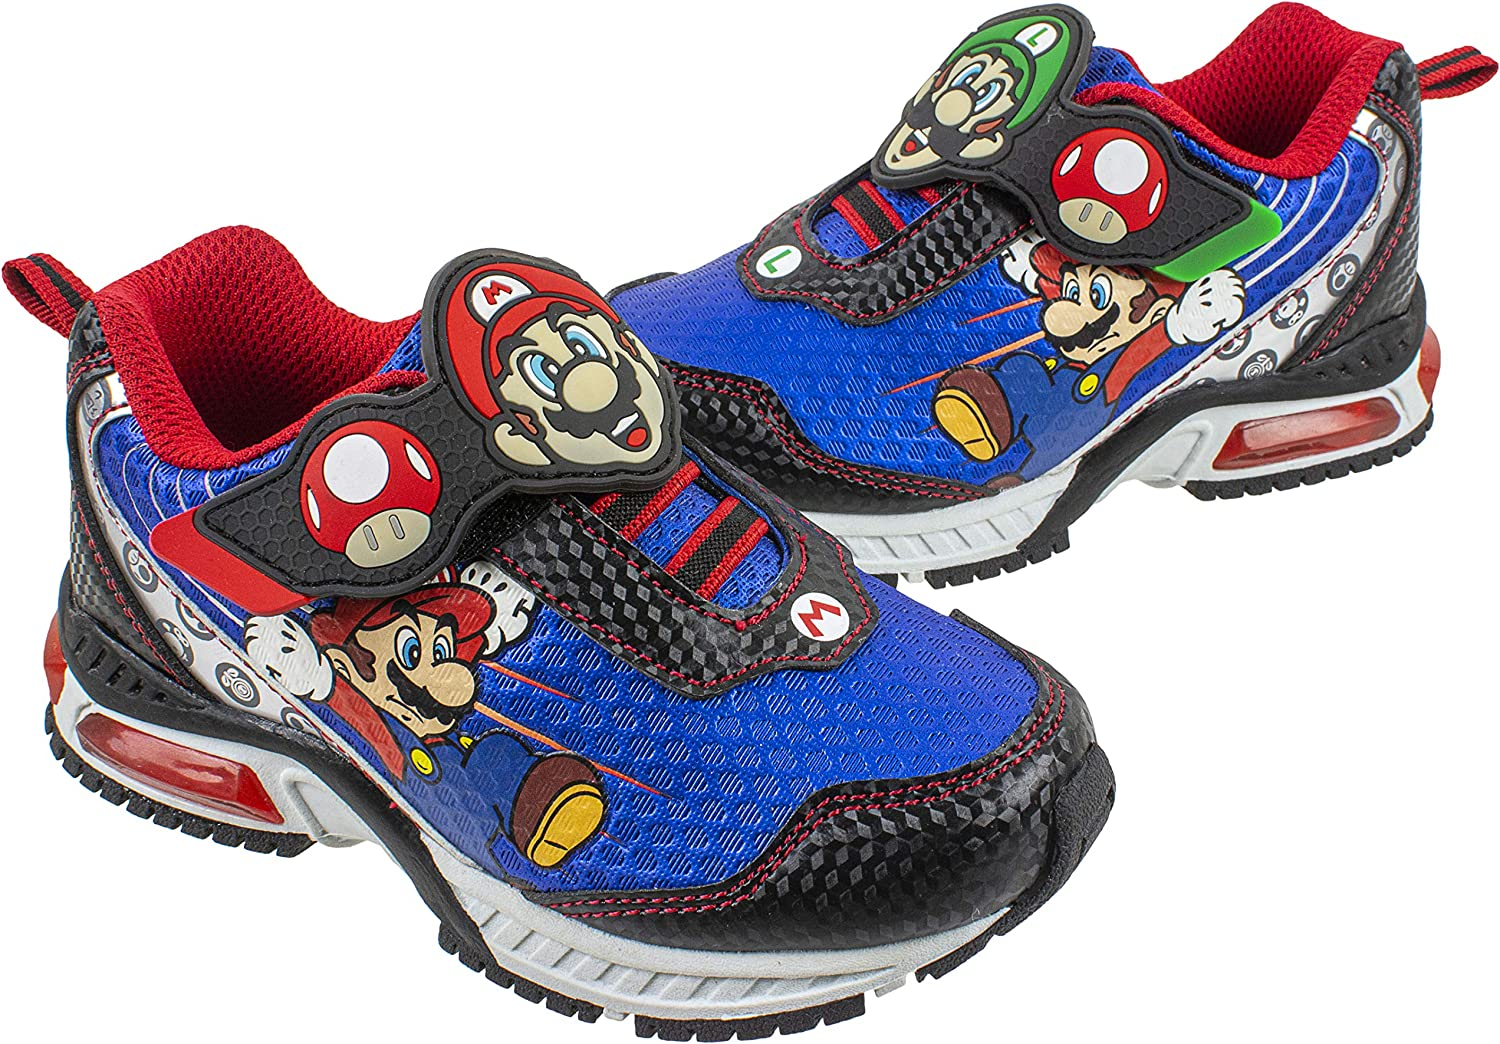 | Super Mario Brothers Mario and Luigi Kids Tennis Shoe, Light Up Sneaker, Mix Match Runner Trainer, Kids Size 11 to 3 | Sneakers